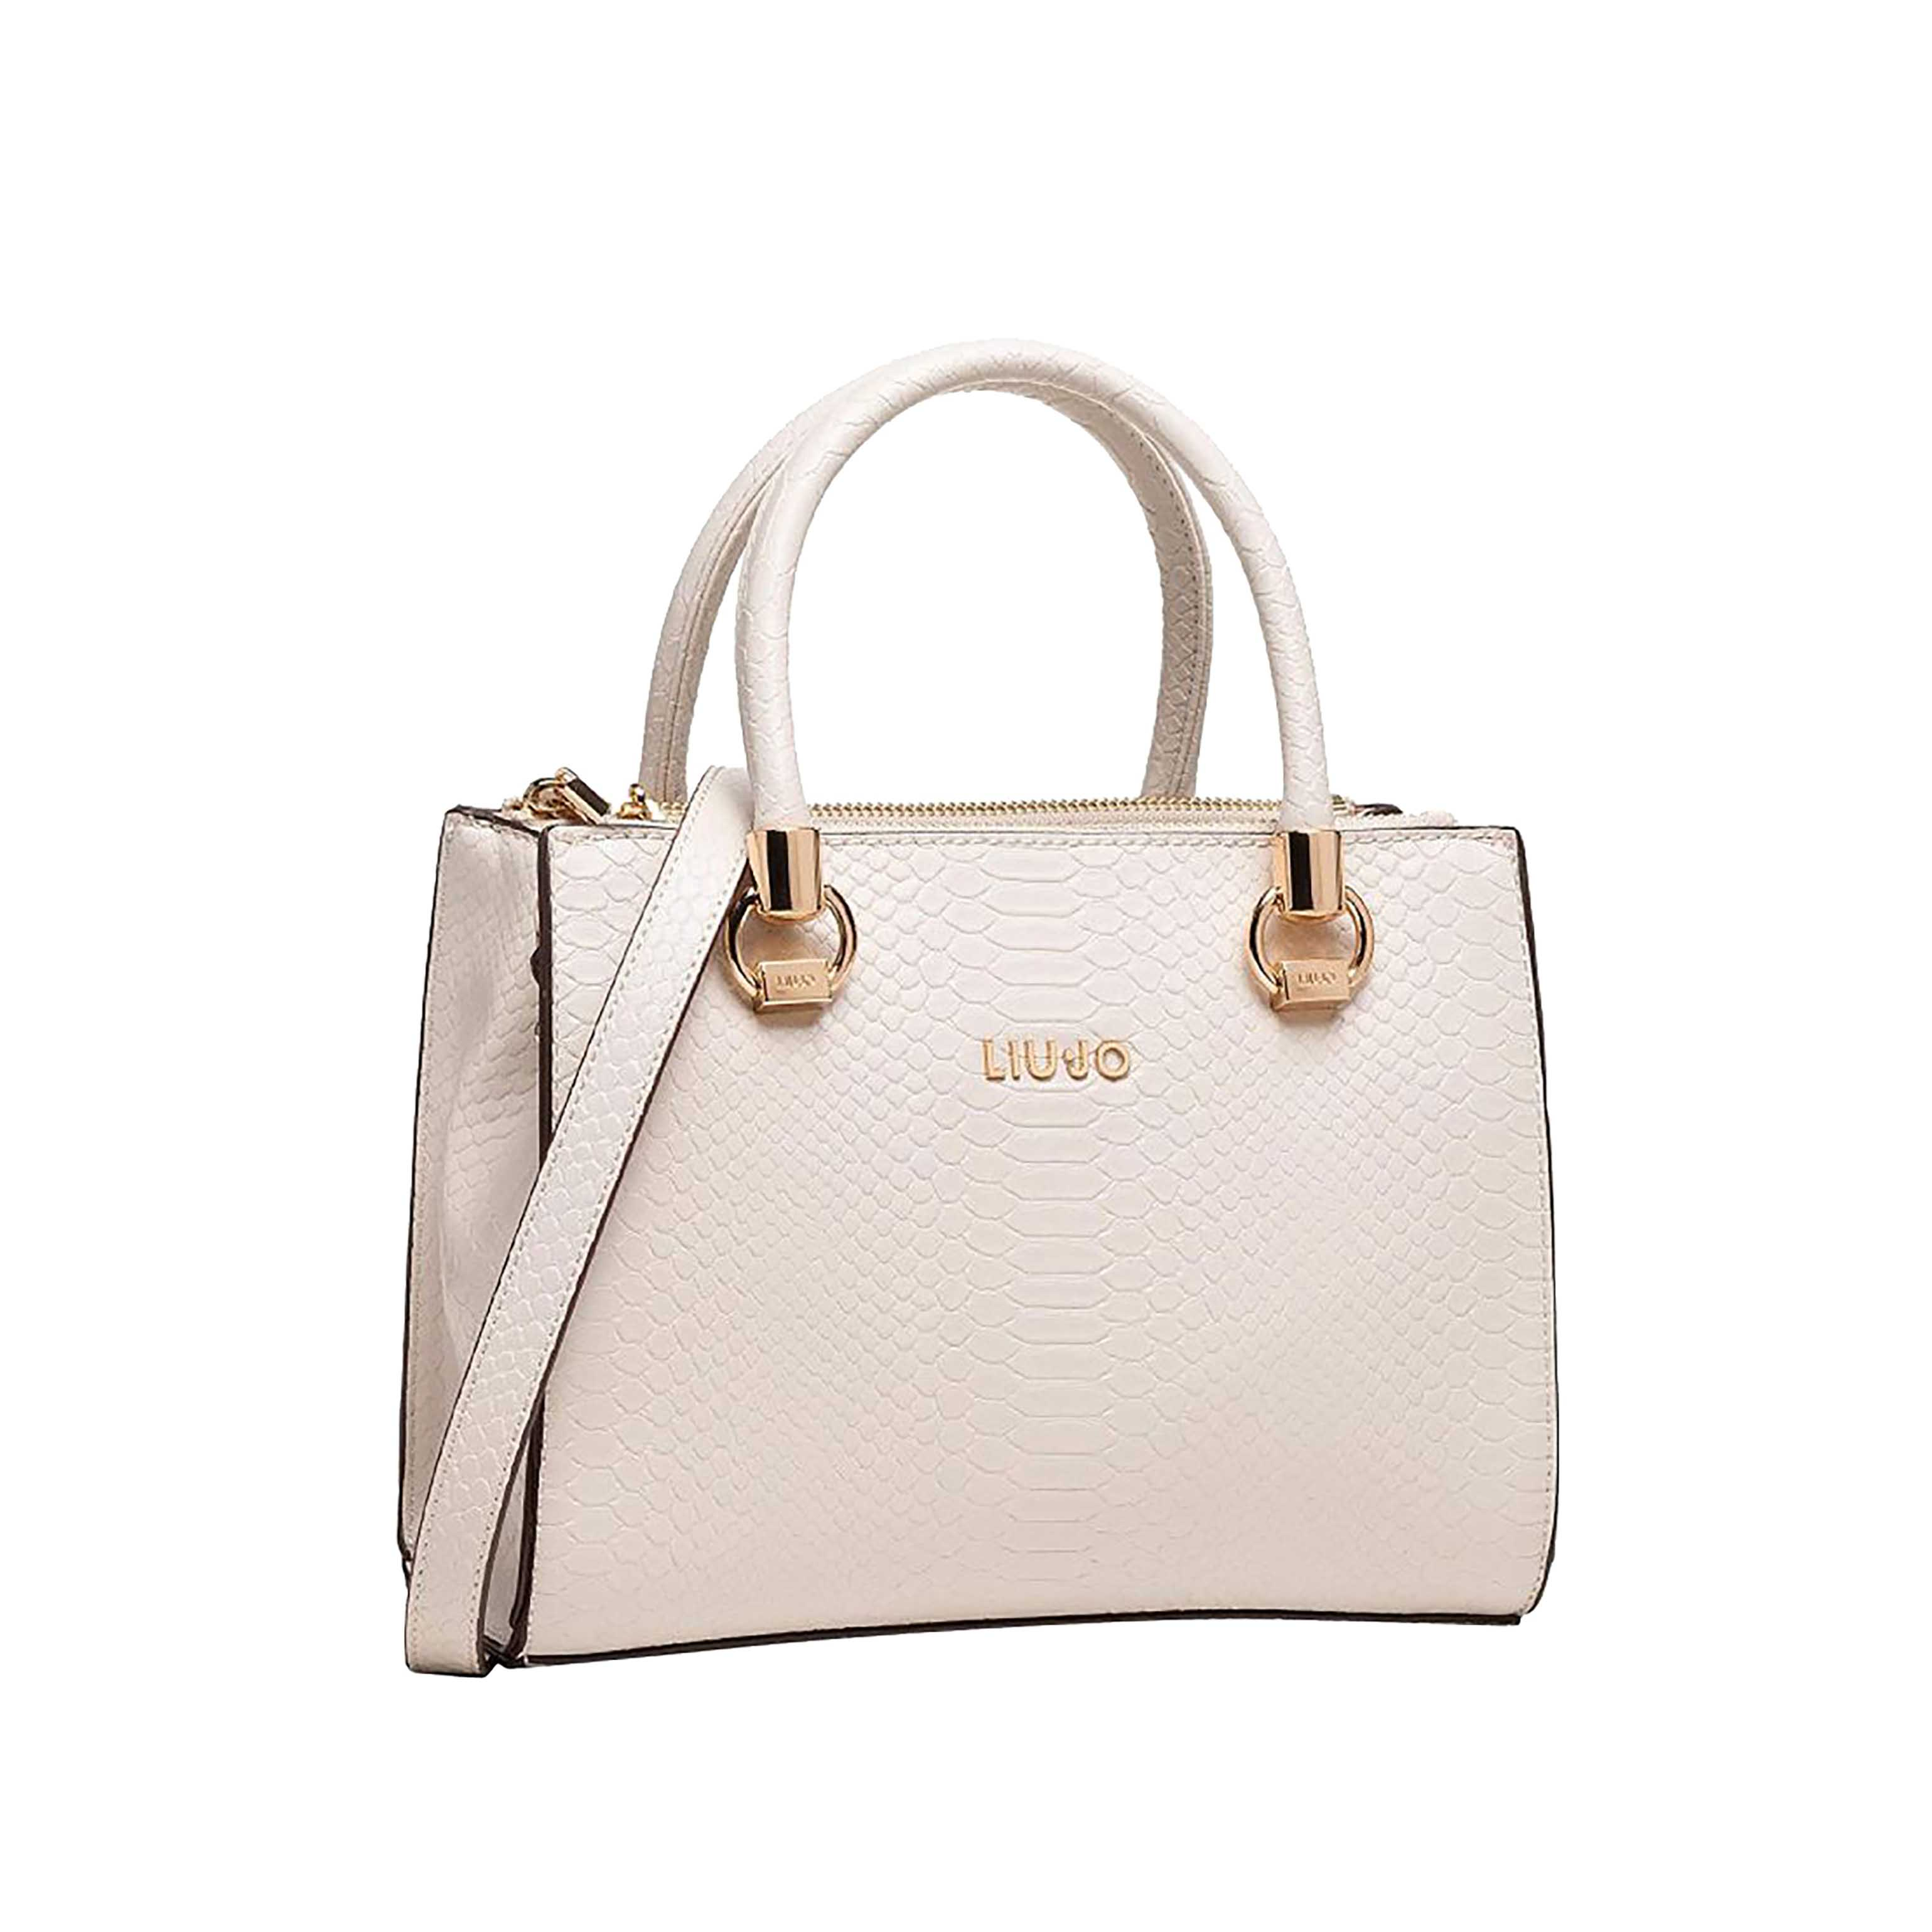 S Satchel double zip LIU JO